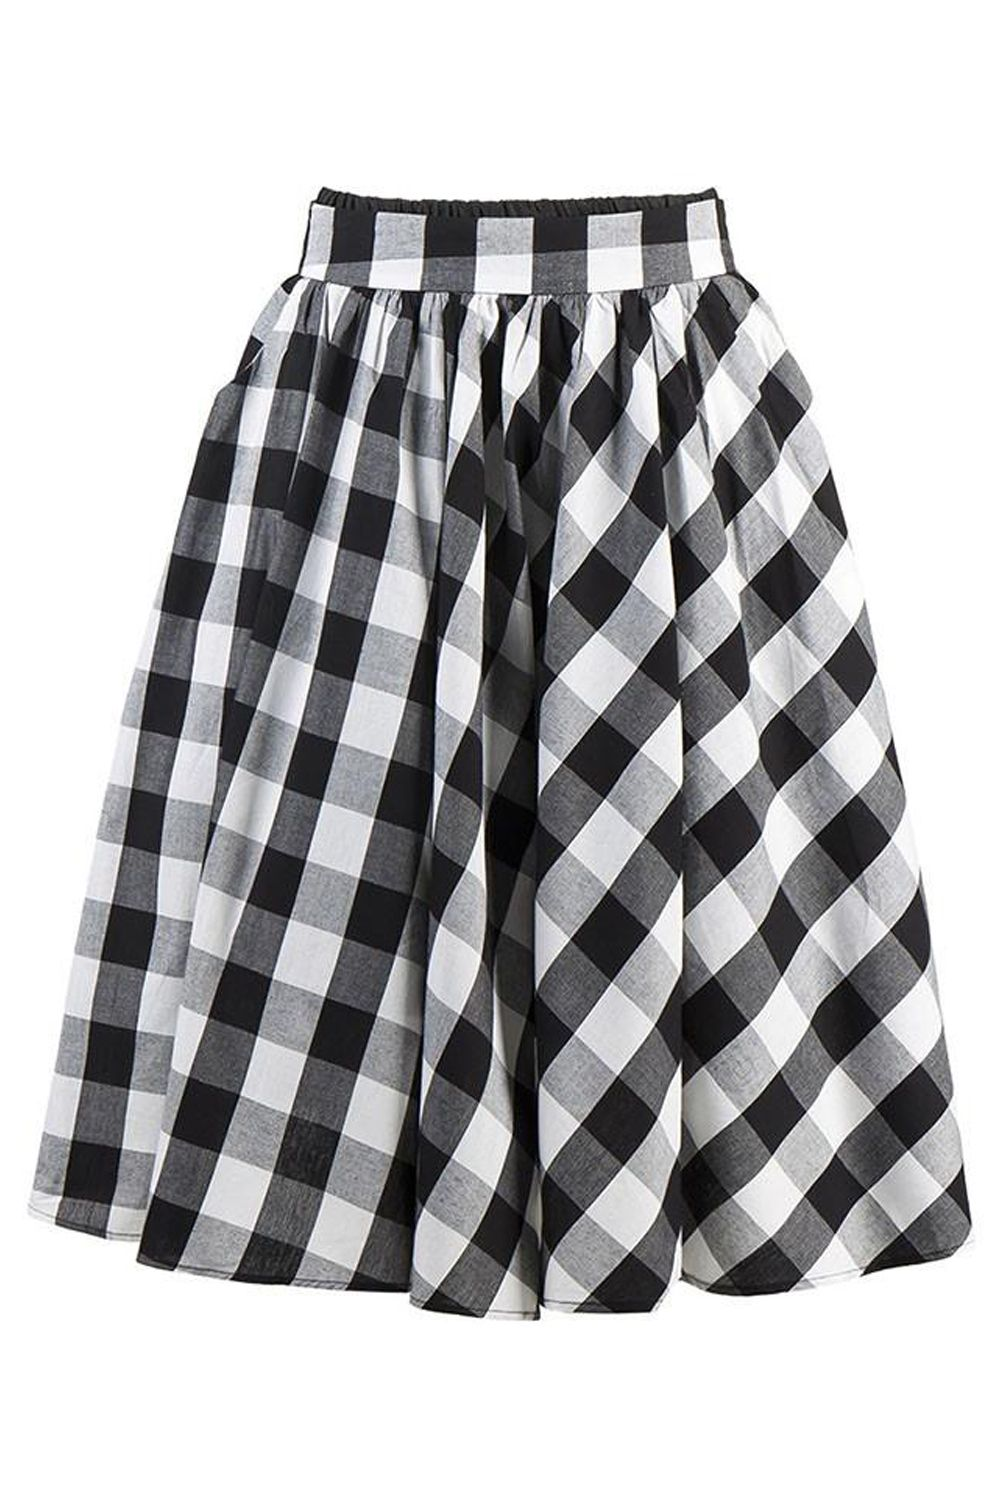 852c643f5d0900 Designer Clothes, Shoes & Bags for Women. With timeless, retro look. Check  out our Atomic Classic Black Plaid Skater Skirt.